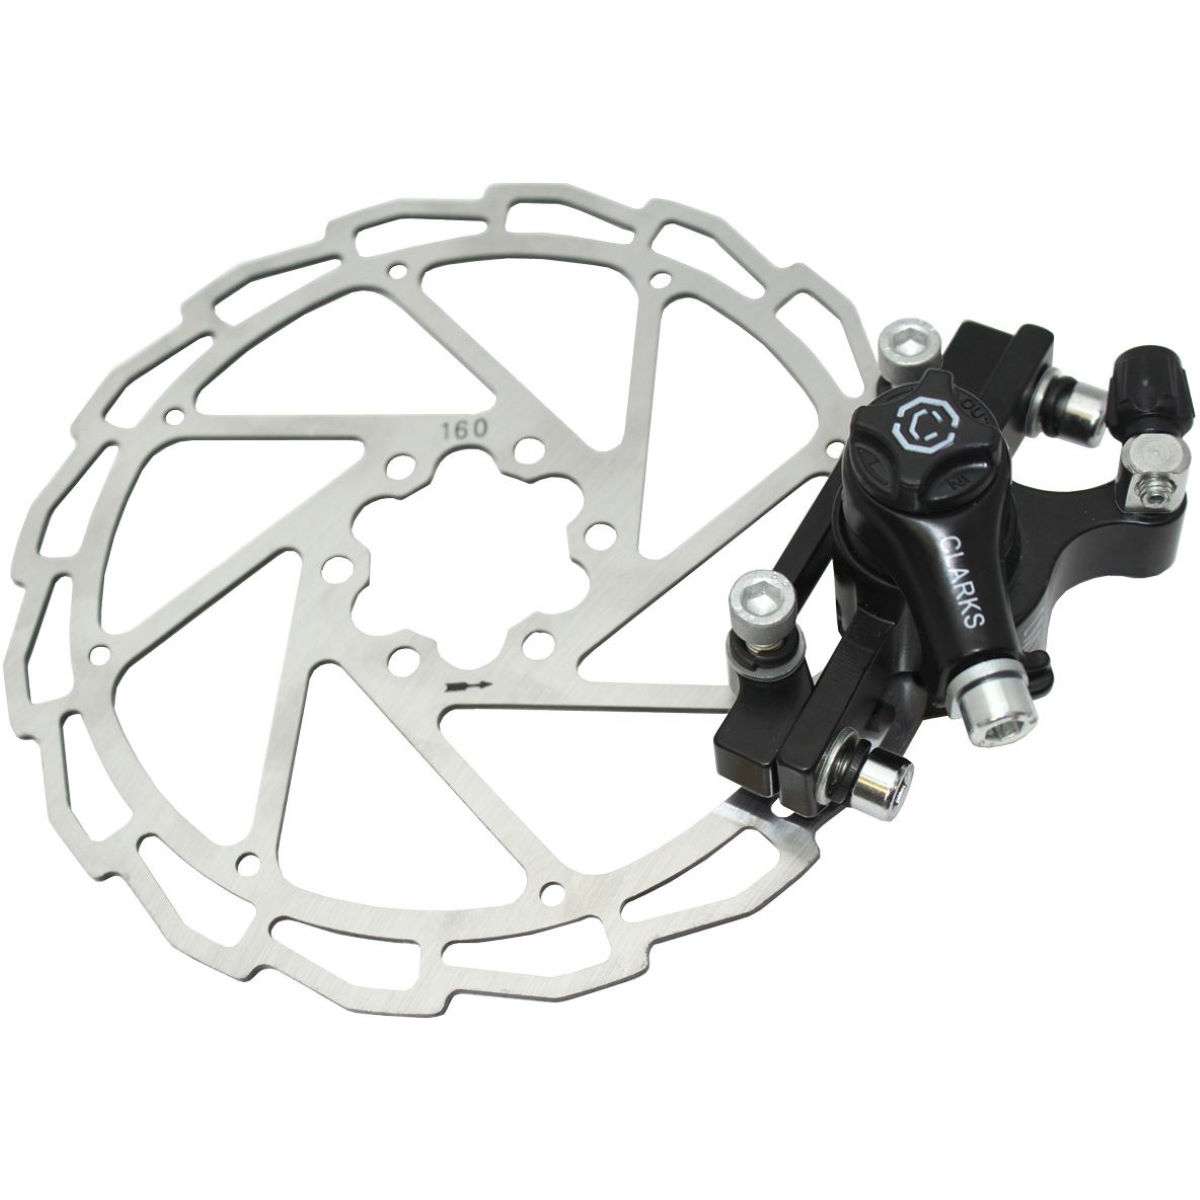 Clarks CMD-11 Mechanical Disc Brake + Rotor - Frenos de disco